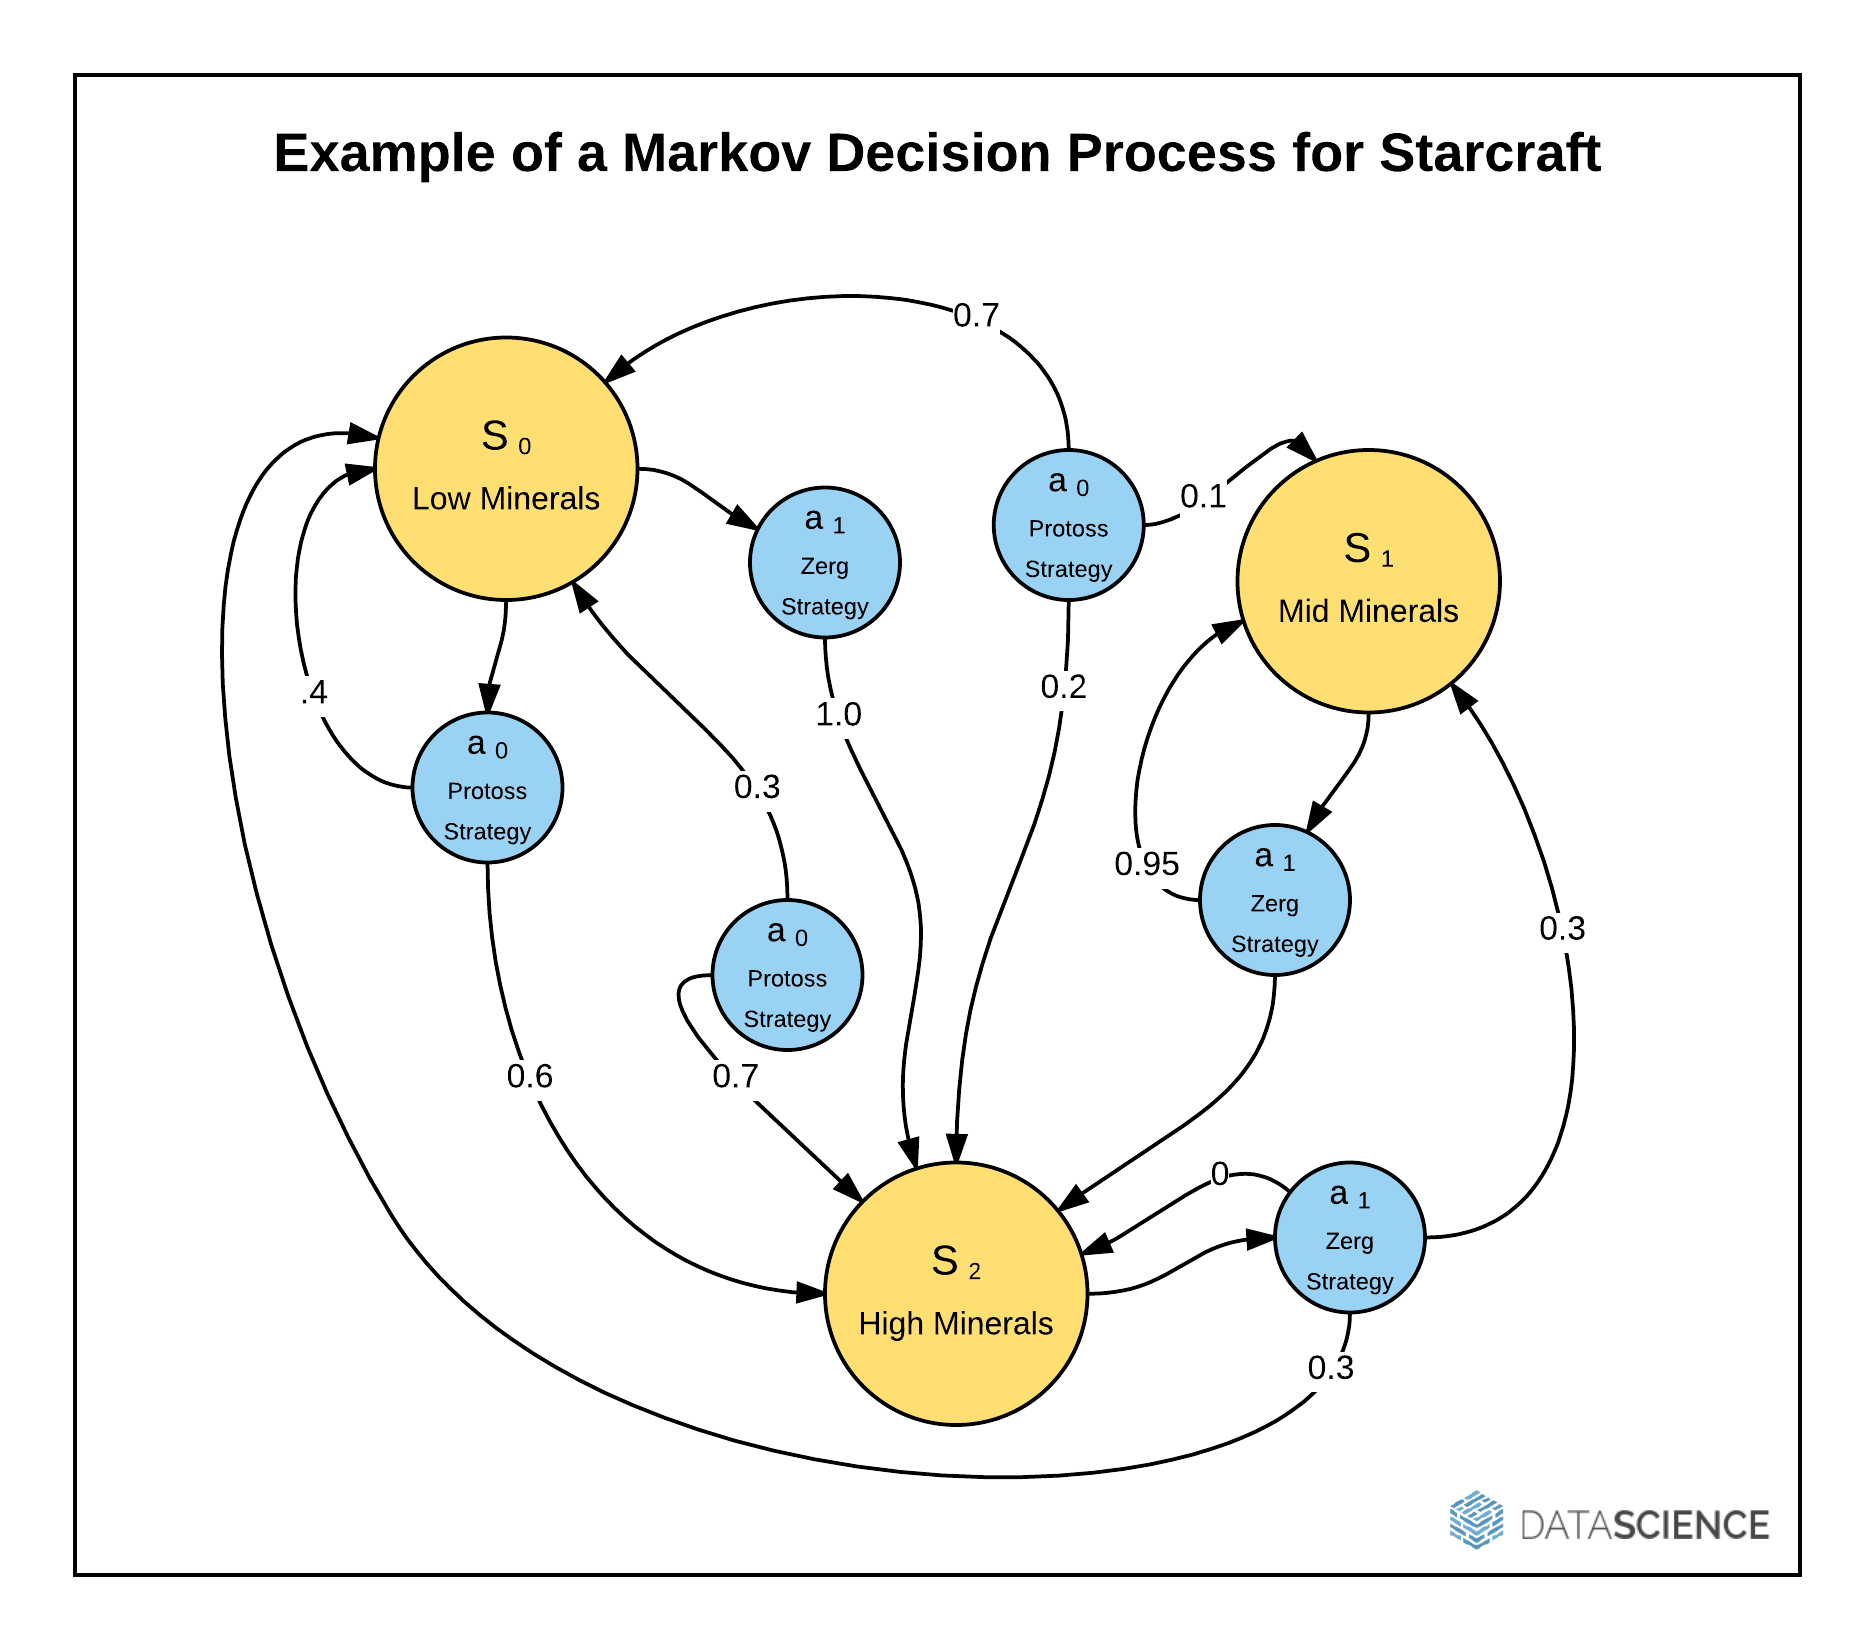 """Reinforcement learning is often achieved using Markov decision processes, or """"MDPs"""". An MDP takes a particular state (S) and provides probabilities for moving from state to state for a series of actions (a)."""